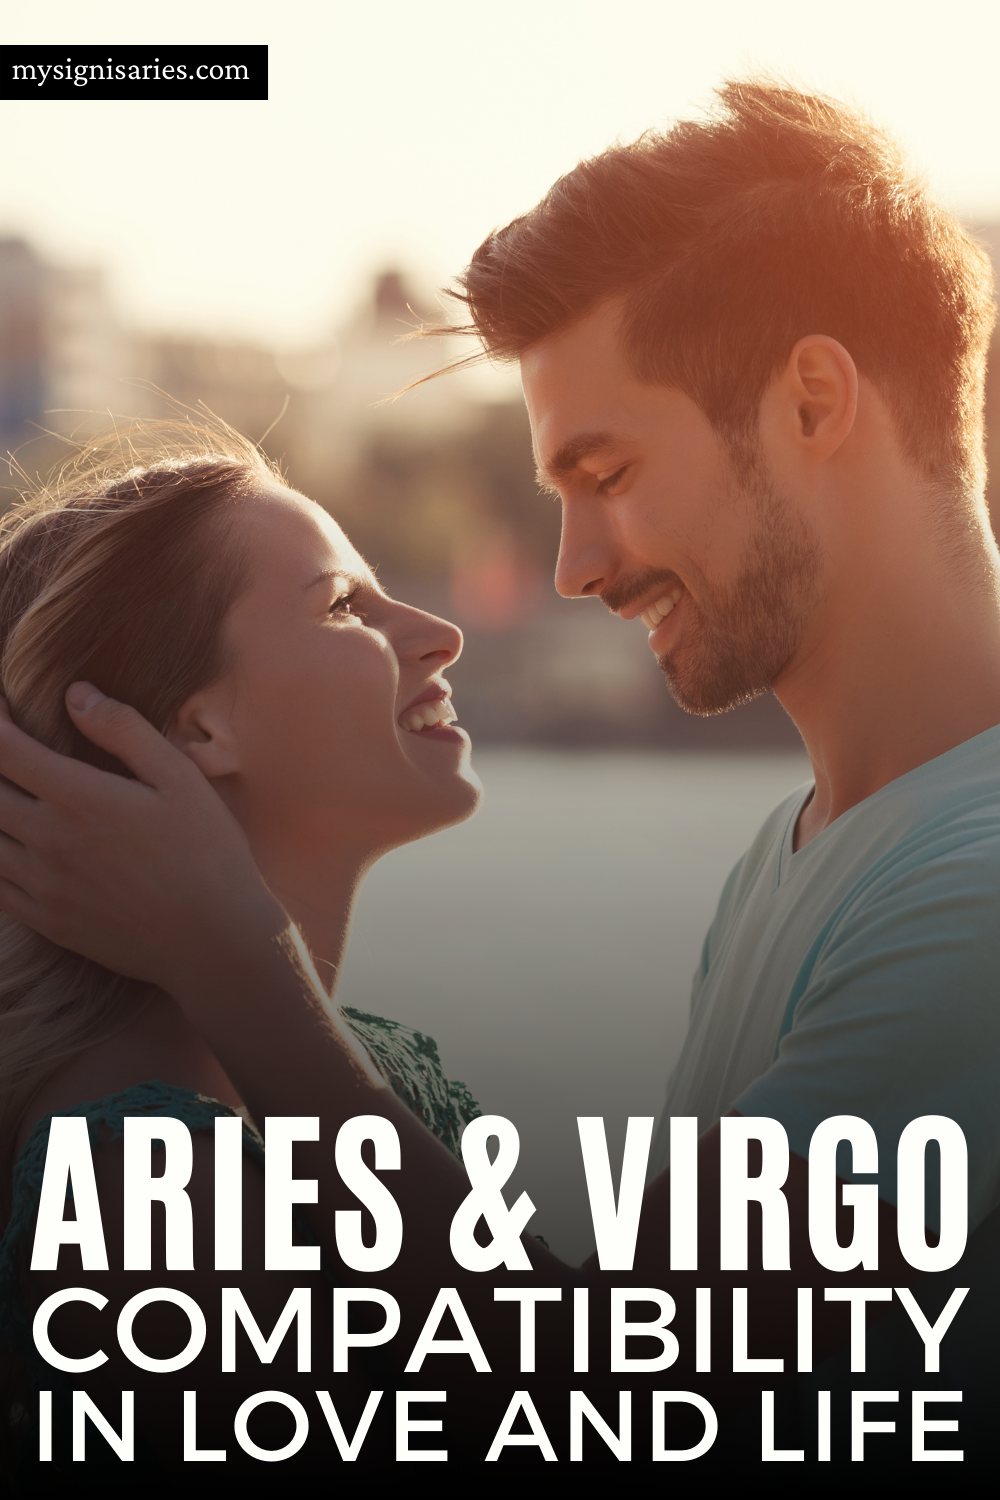 Aries And Virgo Compatibility In Love And Life #aries #ariessign #arieslove #virgo #zodiac #astrology